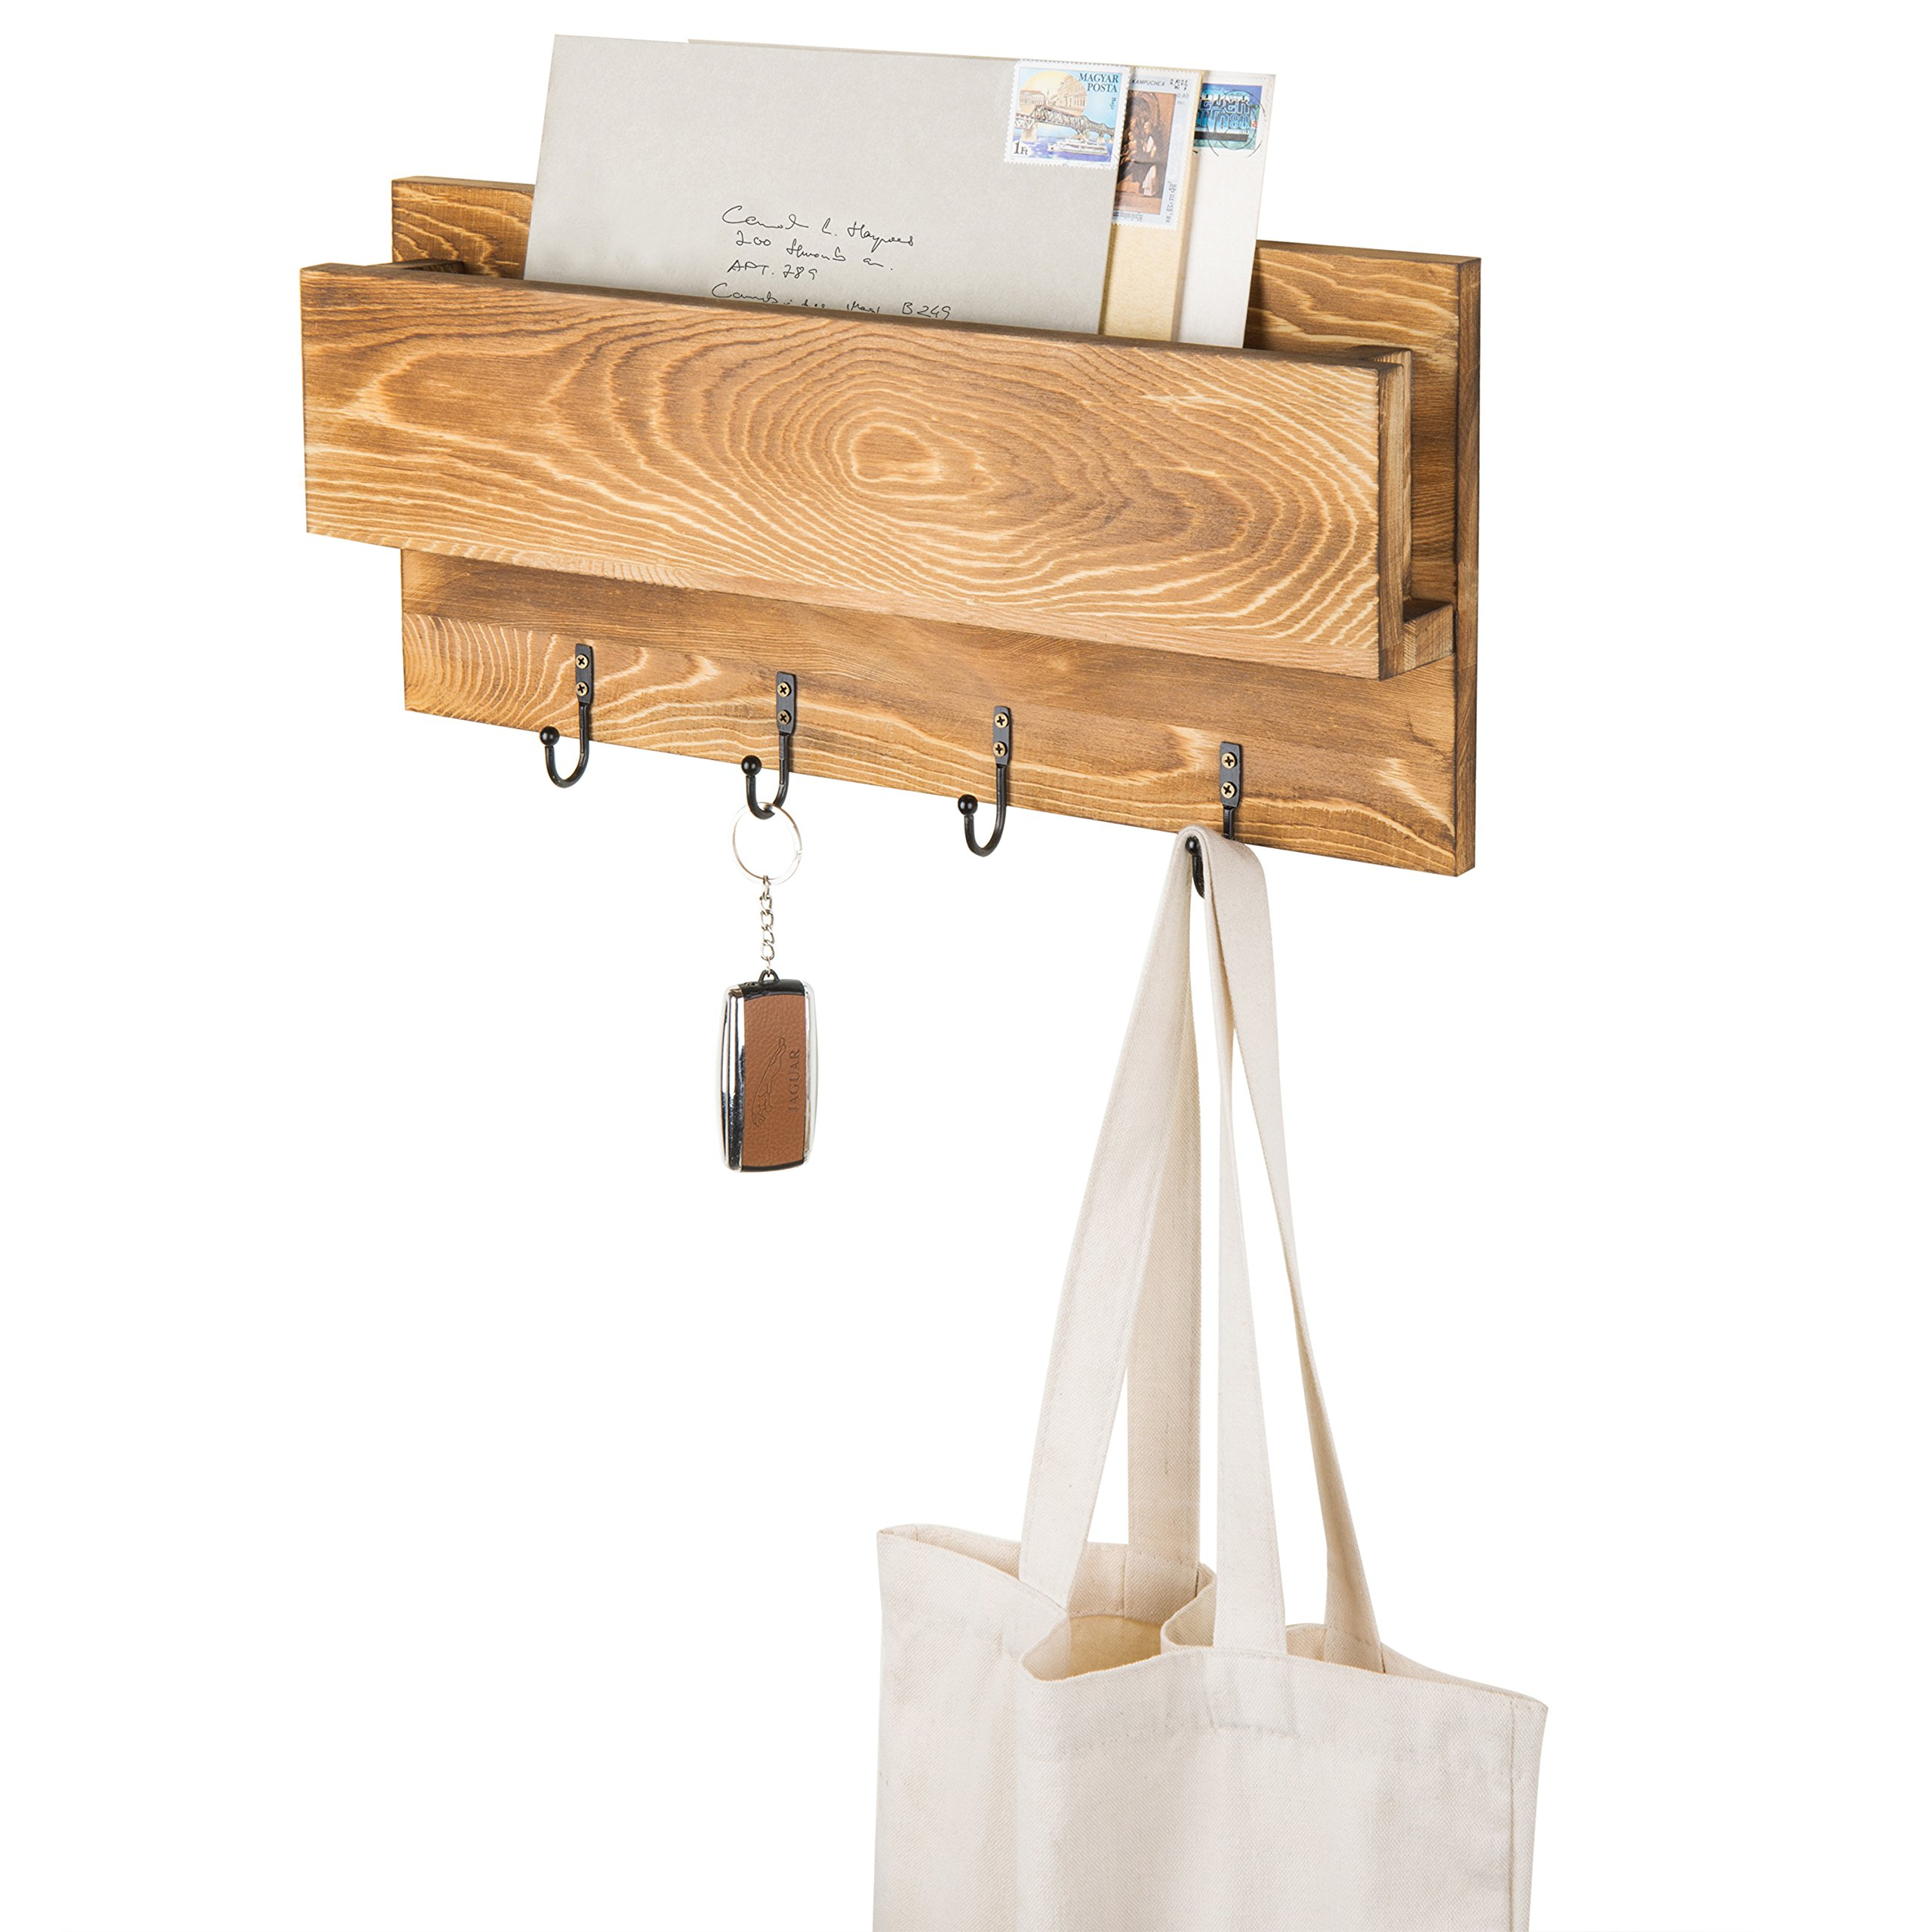 MyGift Wall-Mounted Burnt Wood Mail Sorter with 4 Key Hooks